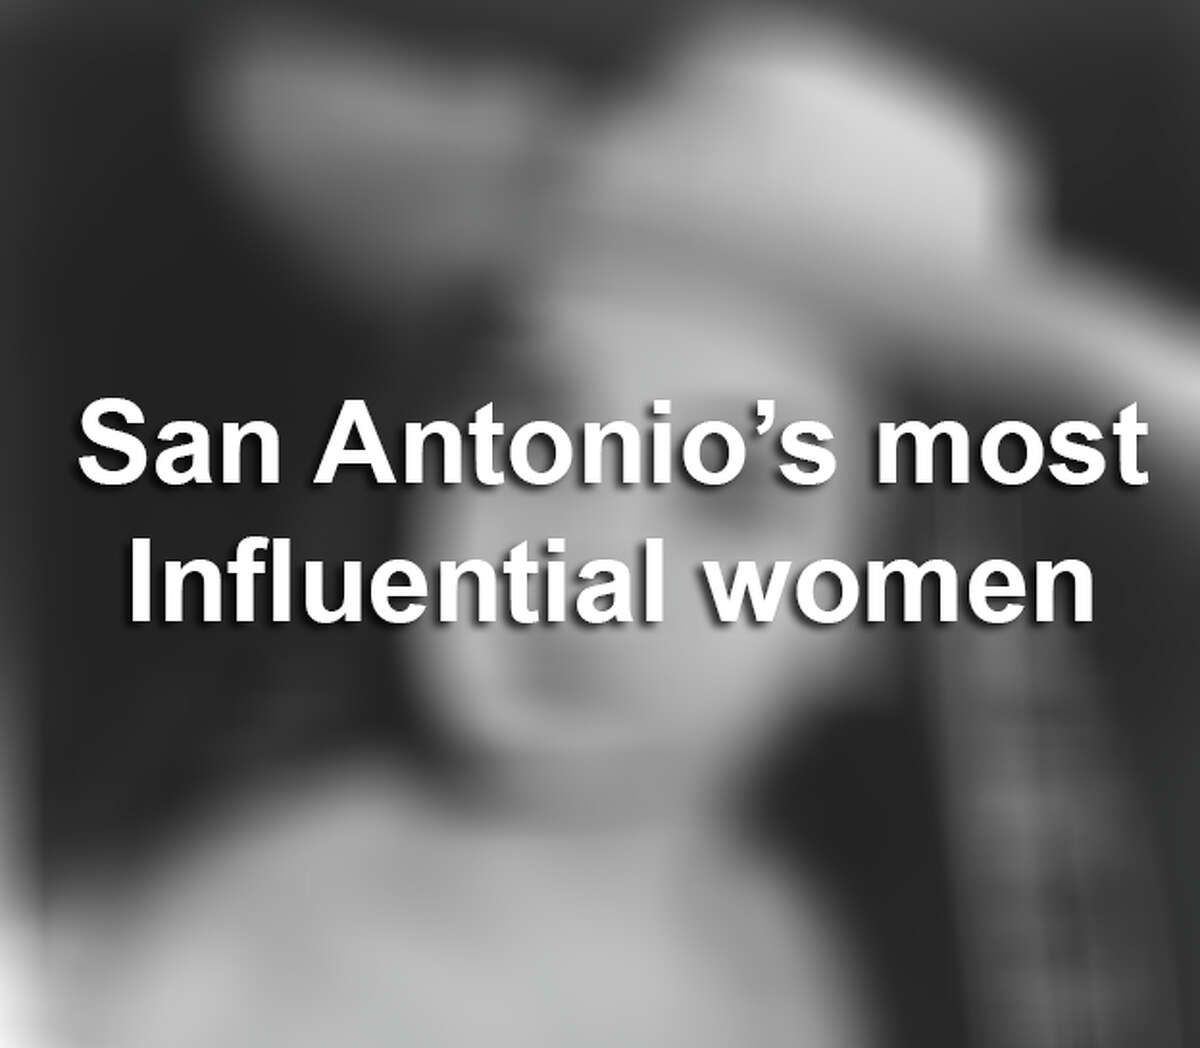 San Antonio history is full of pioneering women who have made great strides forward. Click through the gallery to get to know some of the most influential women in San Antonio history.